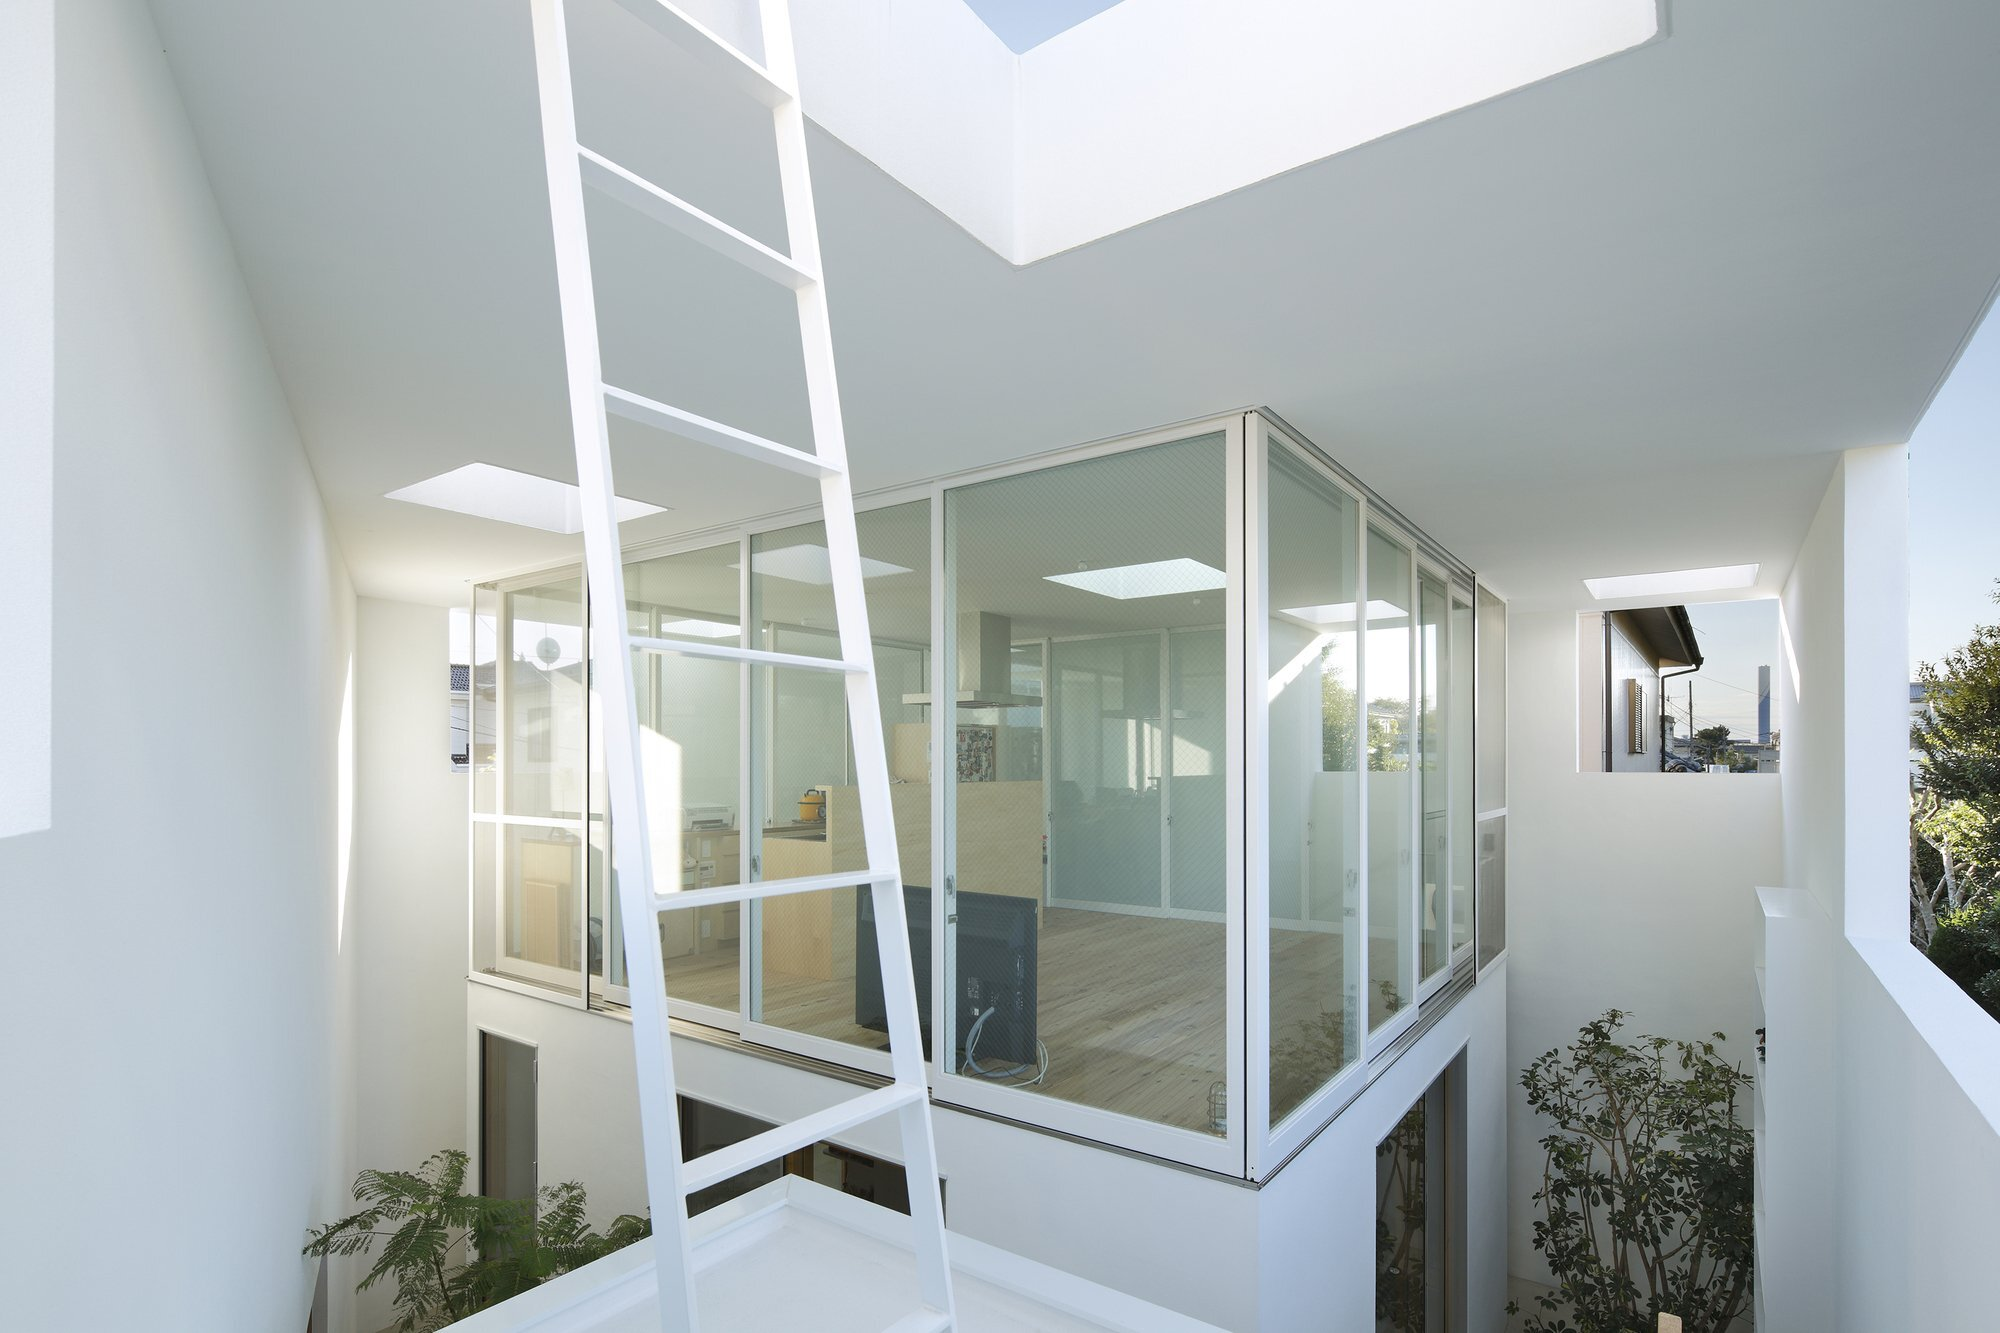 Small House By Takeshi Hosaka Opens Up To The Outside